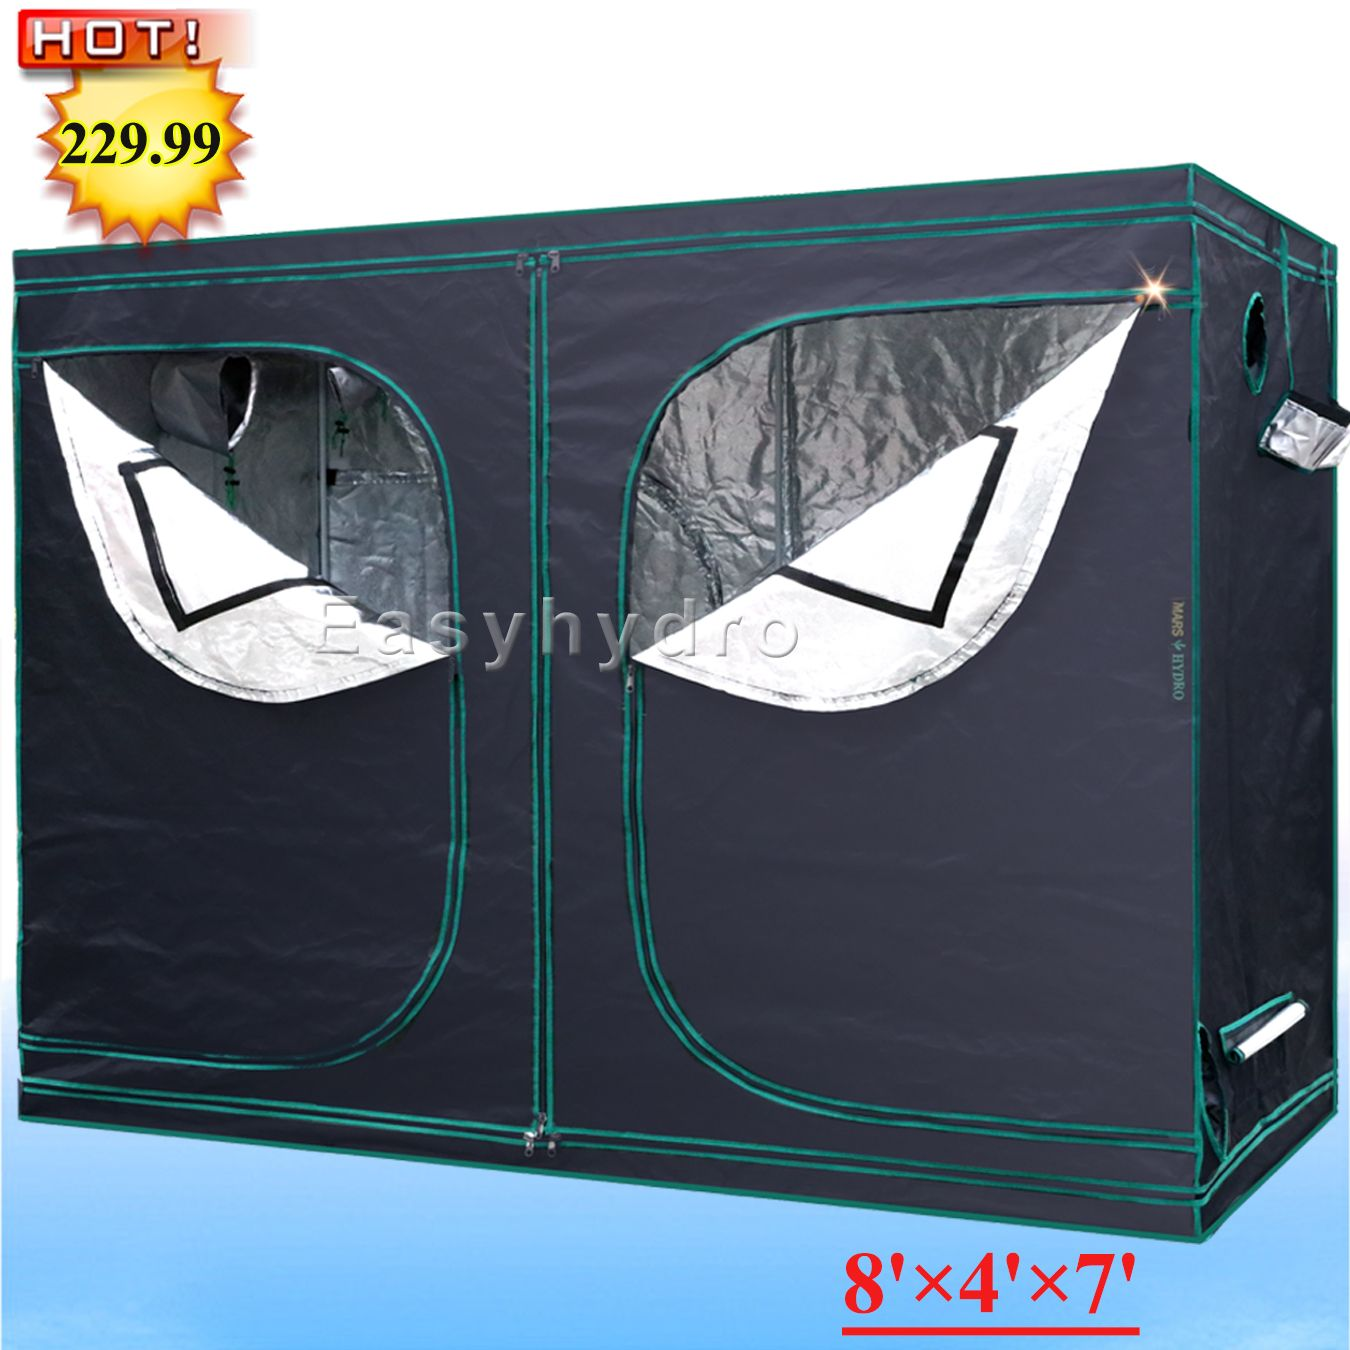 Growing With The Viparspectra 900 Watt Plant Bud Grow Tent Plants